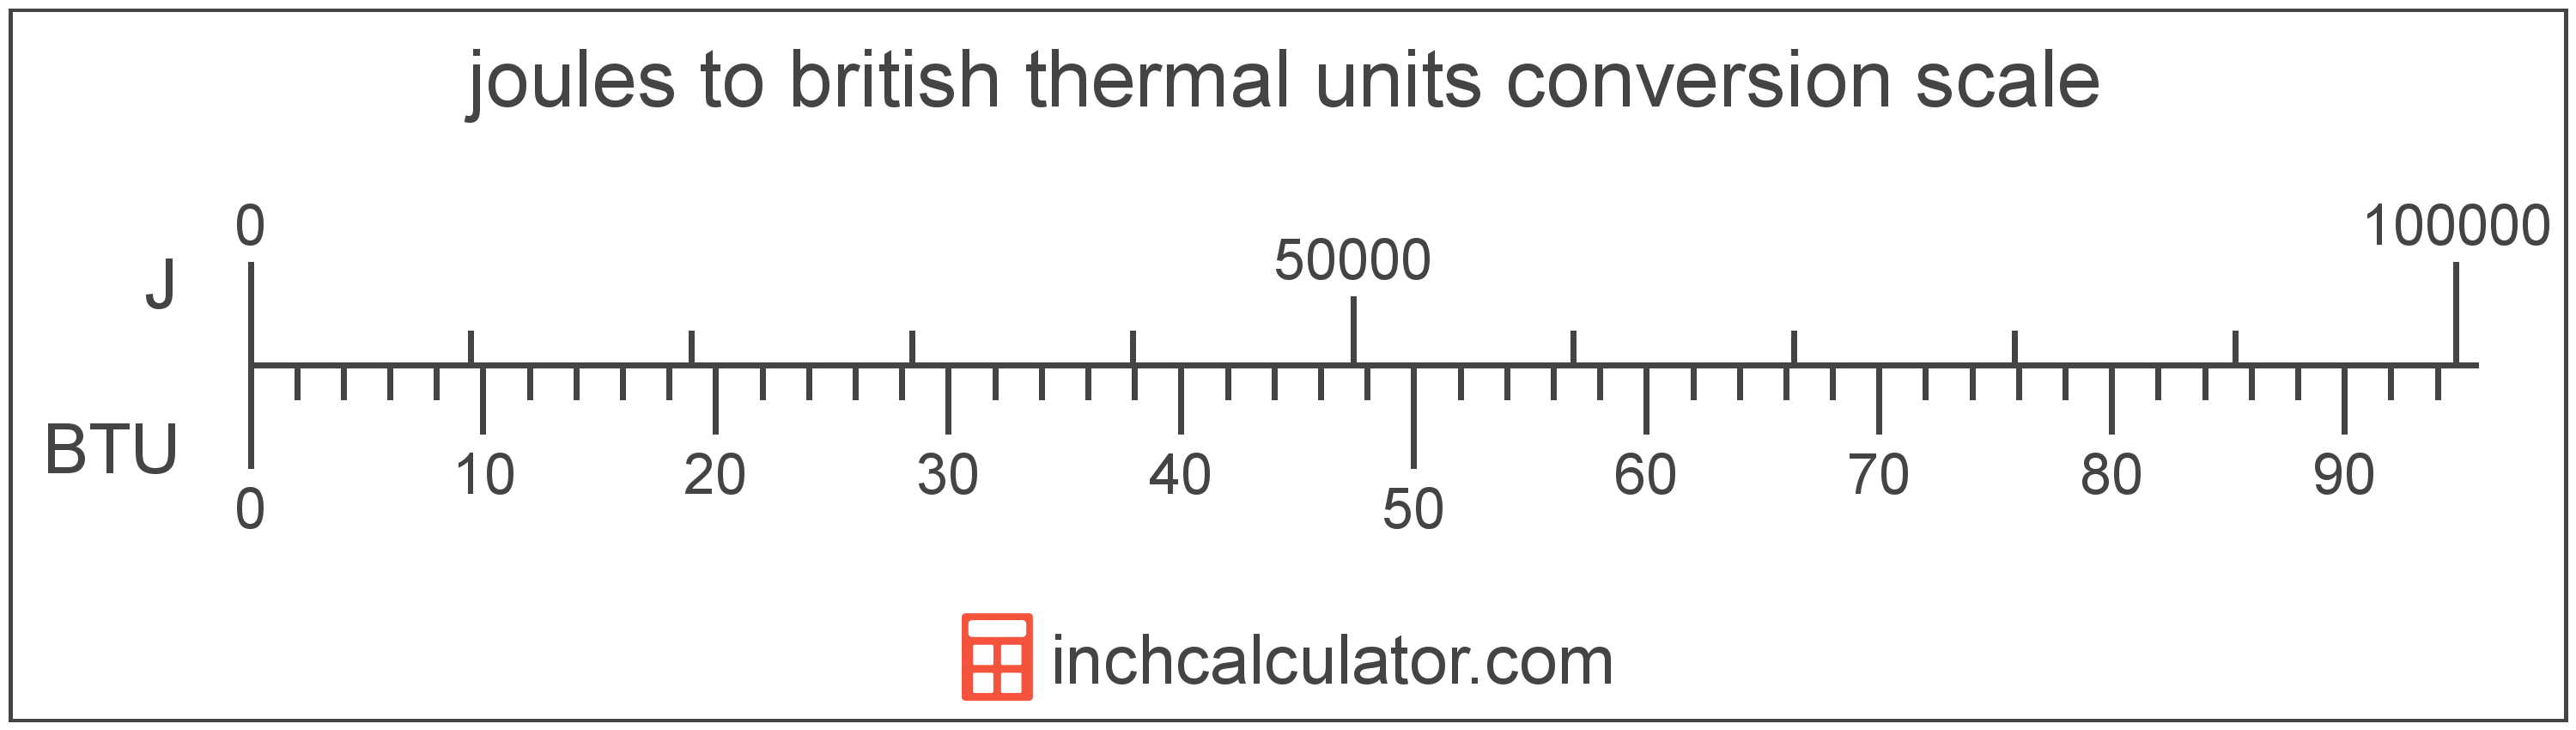 conversion scale showing joules and equivalent british thermal units energy values